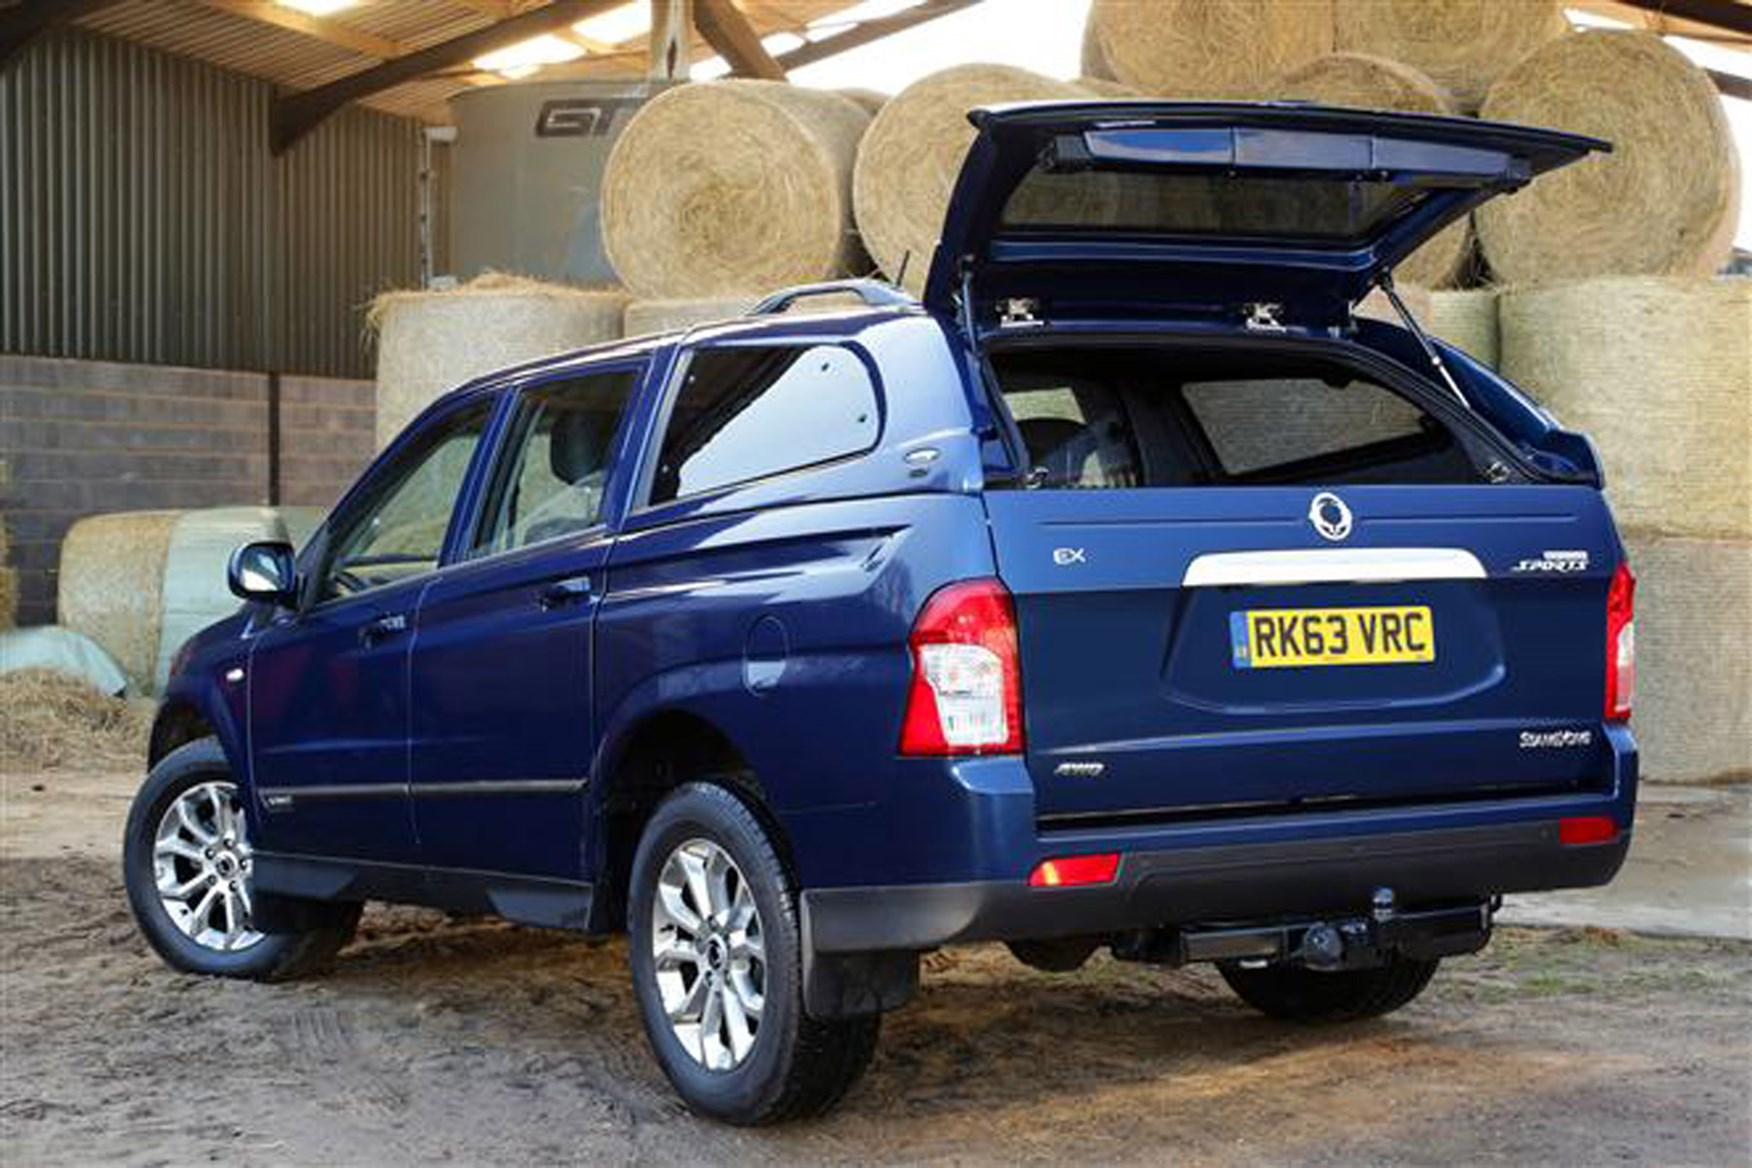 SsangYong Korando Sports review on Parkers Vans - load area access